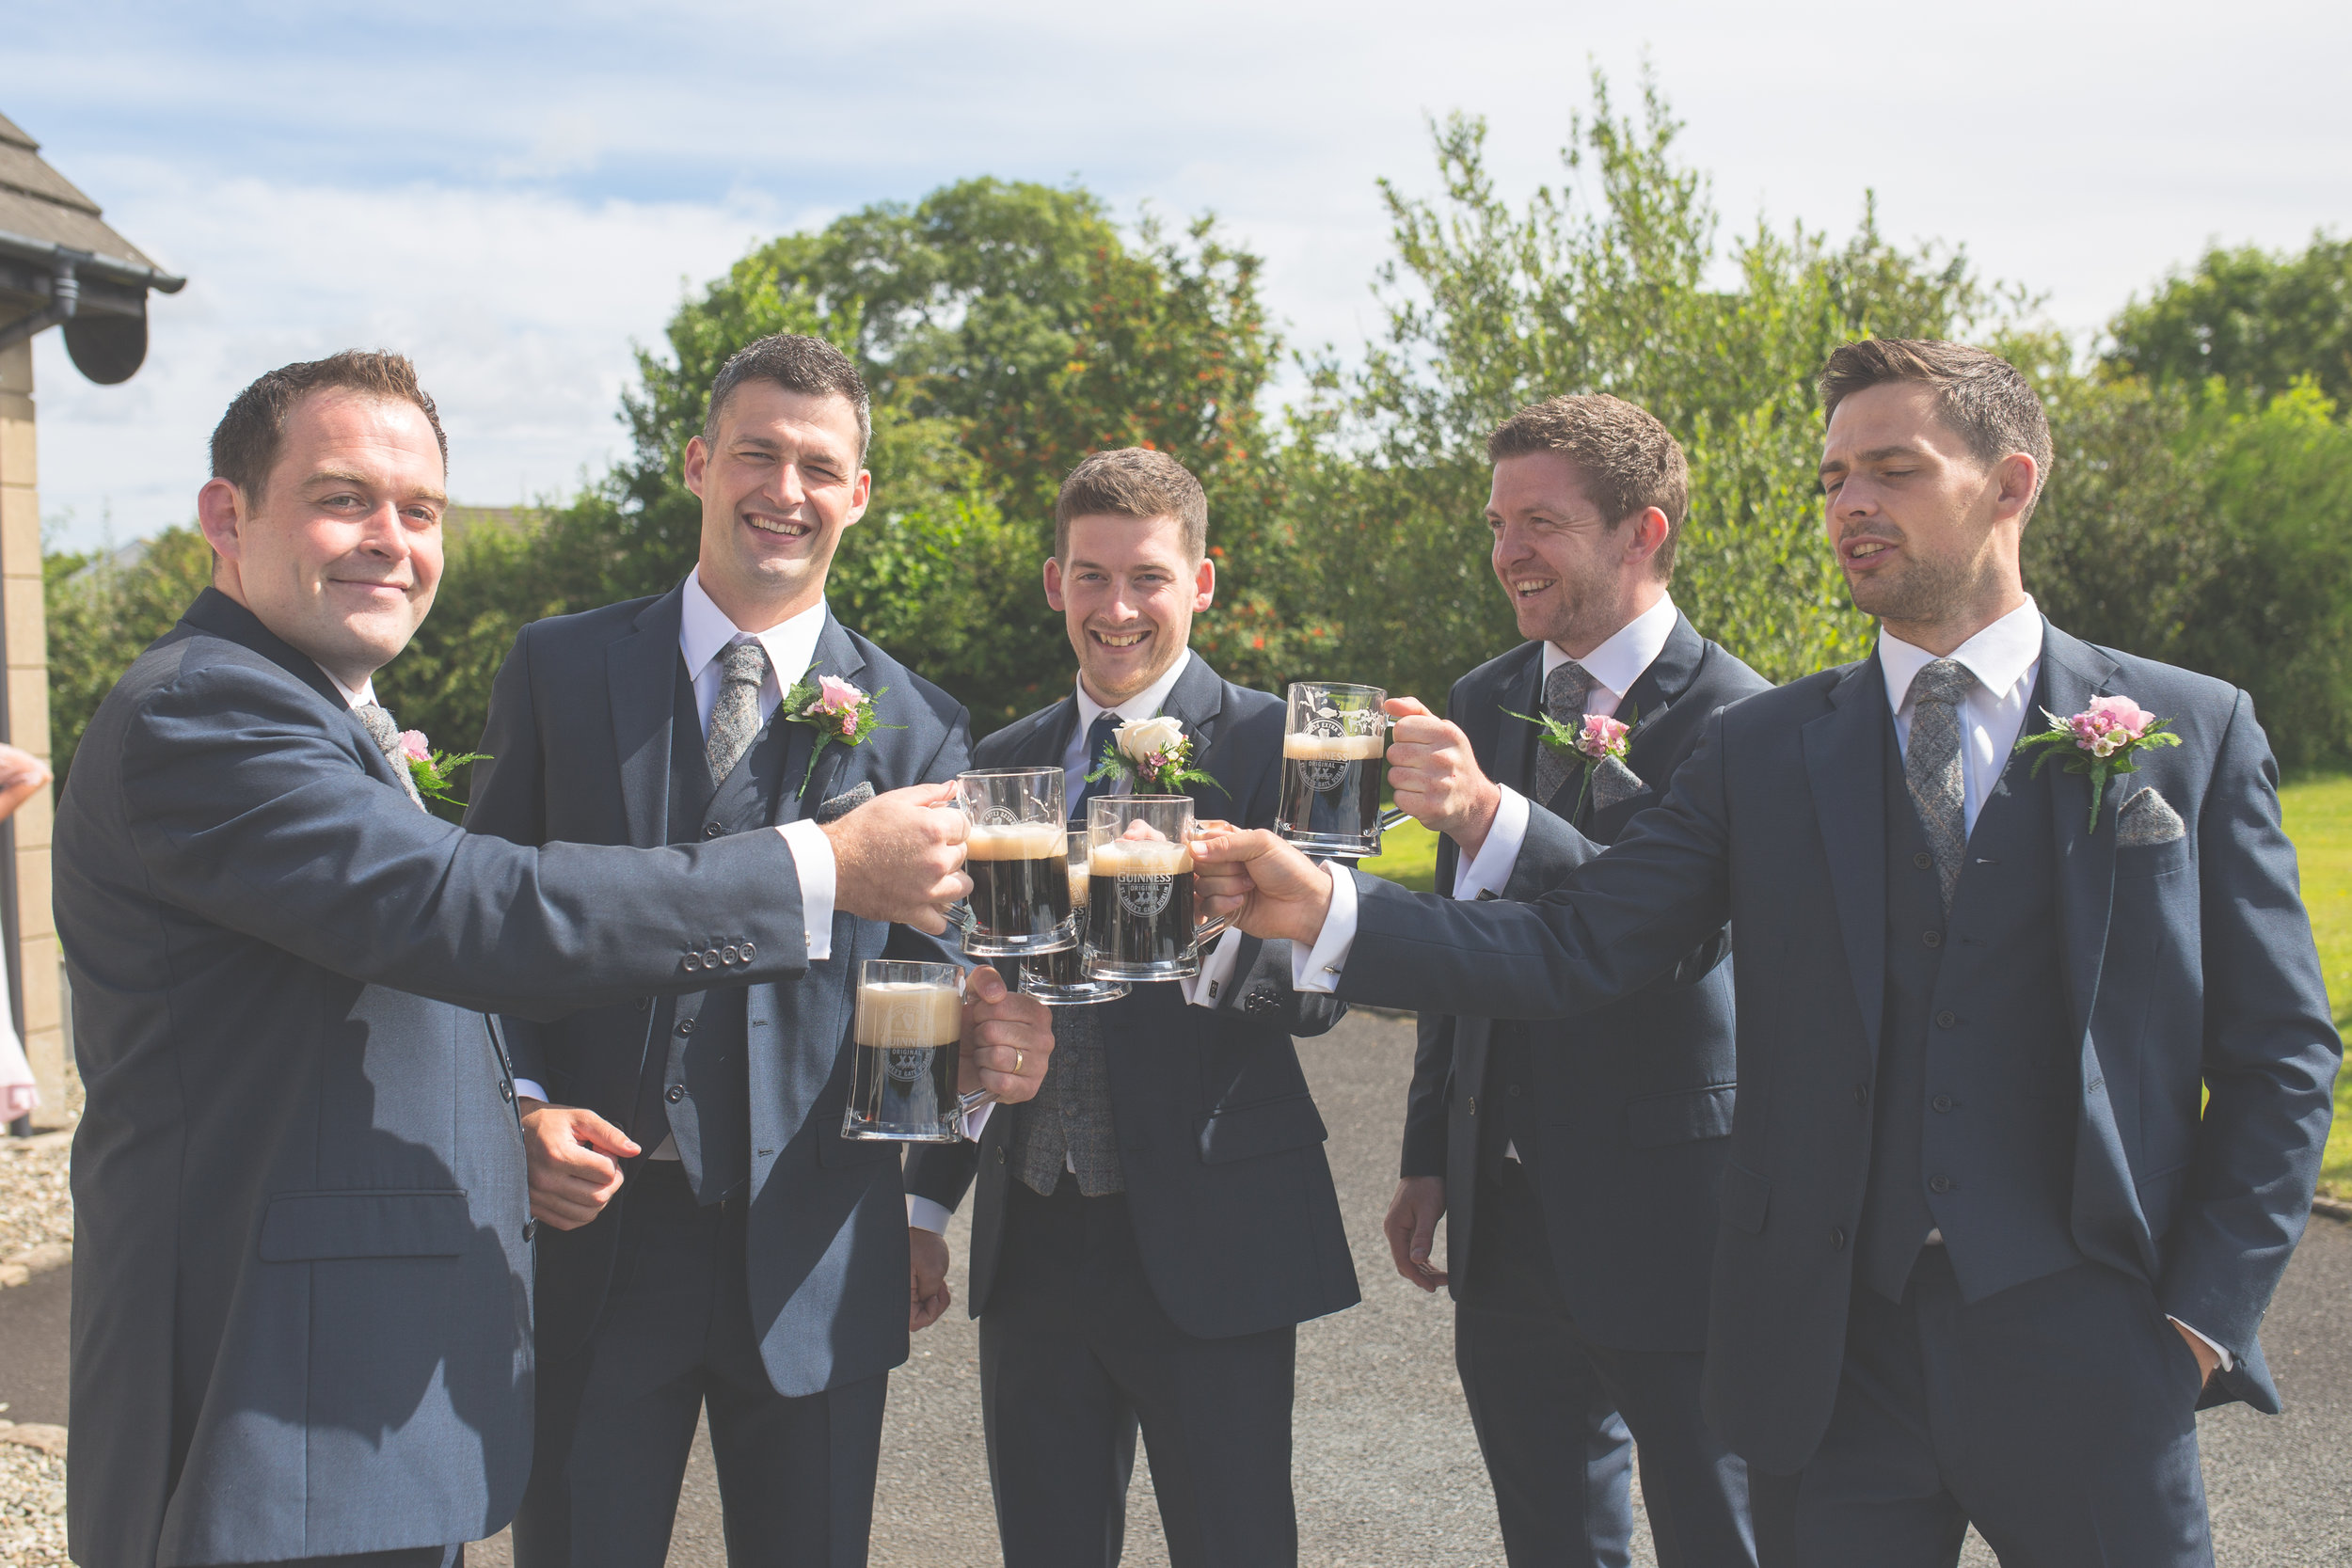 Brian McEwan Wedding Photography | Carol-Anne & Sean | Groom & Groomsmen-87.jpg